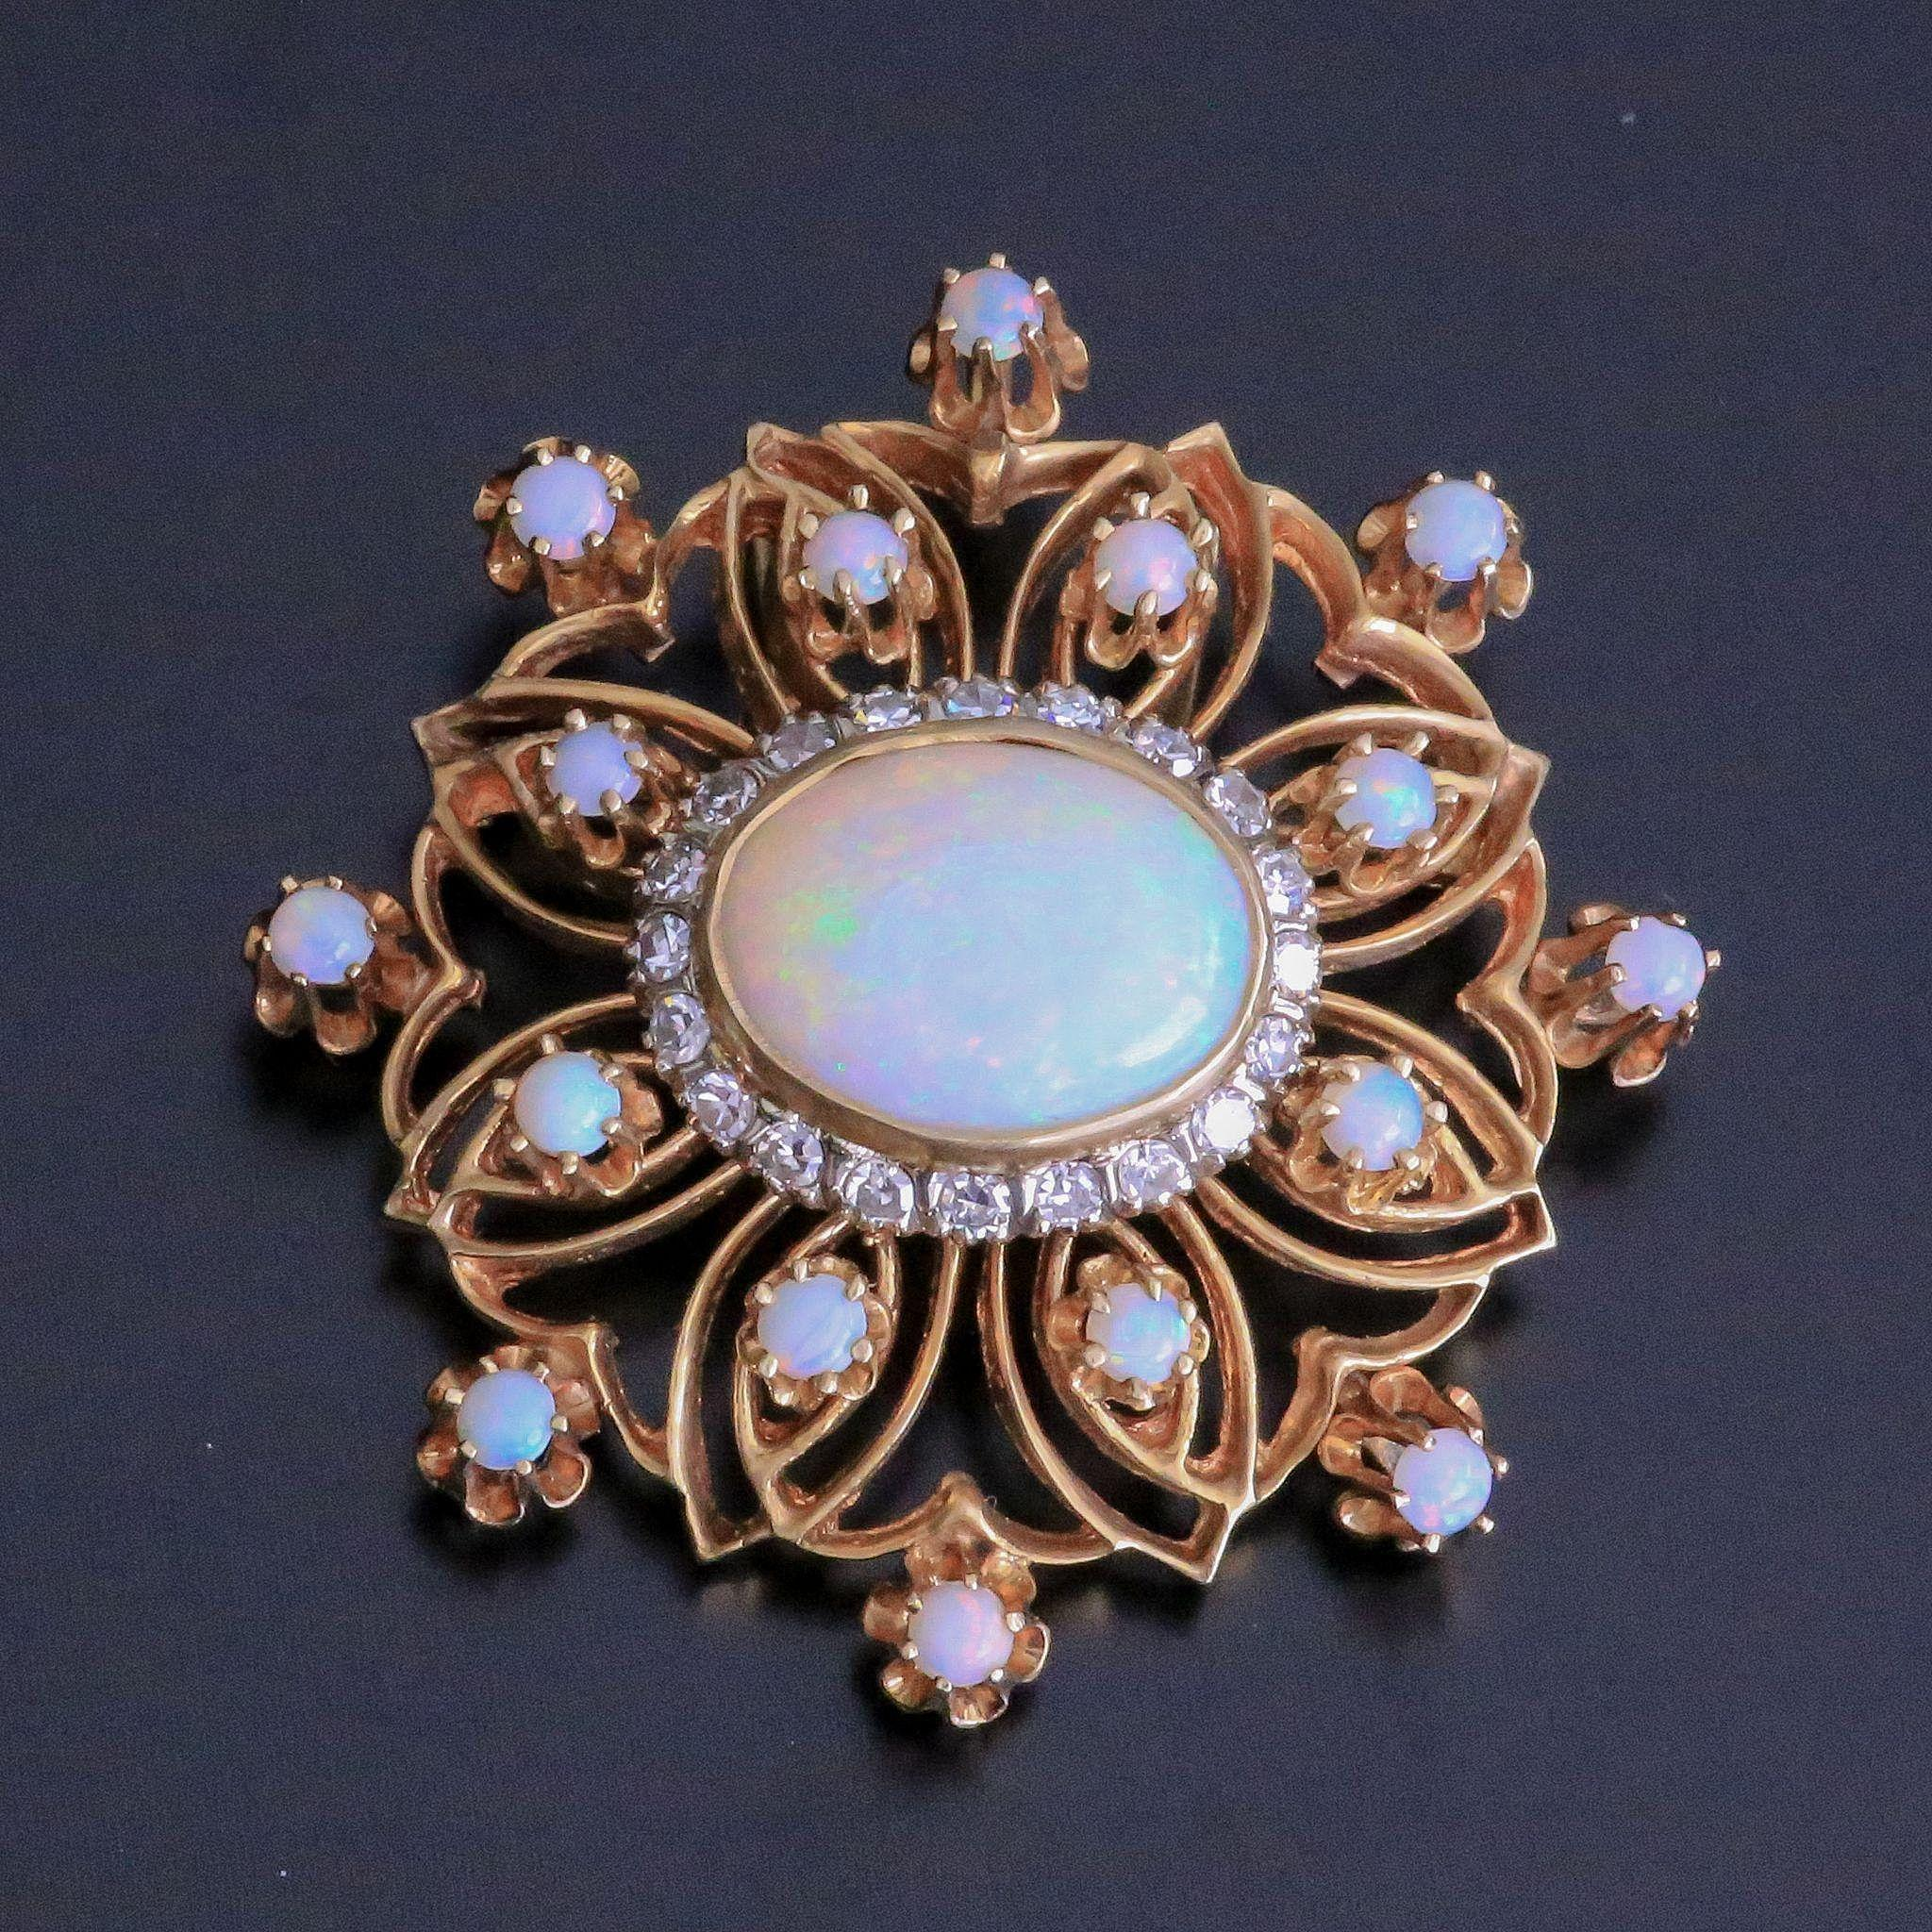 Exceptional C. 1910 Lady's 14K Opal & Diamond Brooch / Pendant